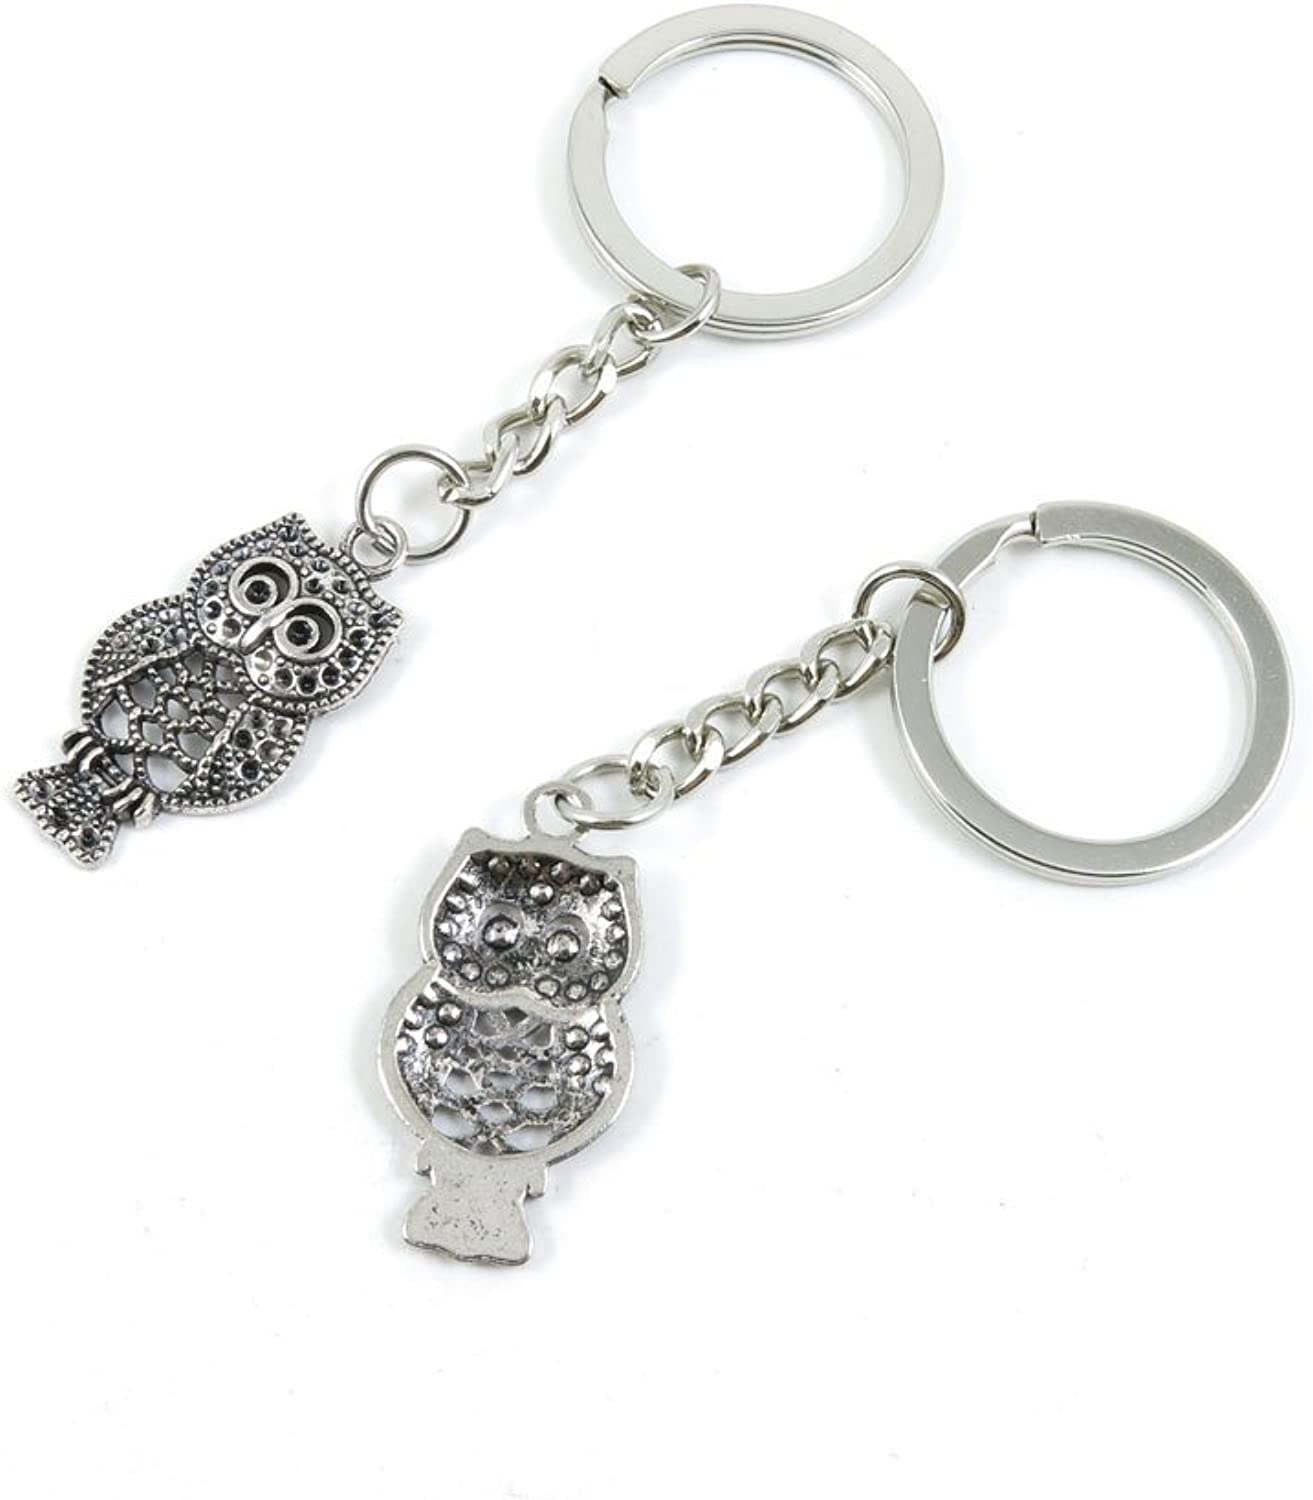 100 Pieces Keychain Keyring Door Car Key Chain Ring Tag Charms Bulk Supply Jewelry Making Clasp Findings Y4IY7Q Owl